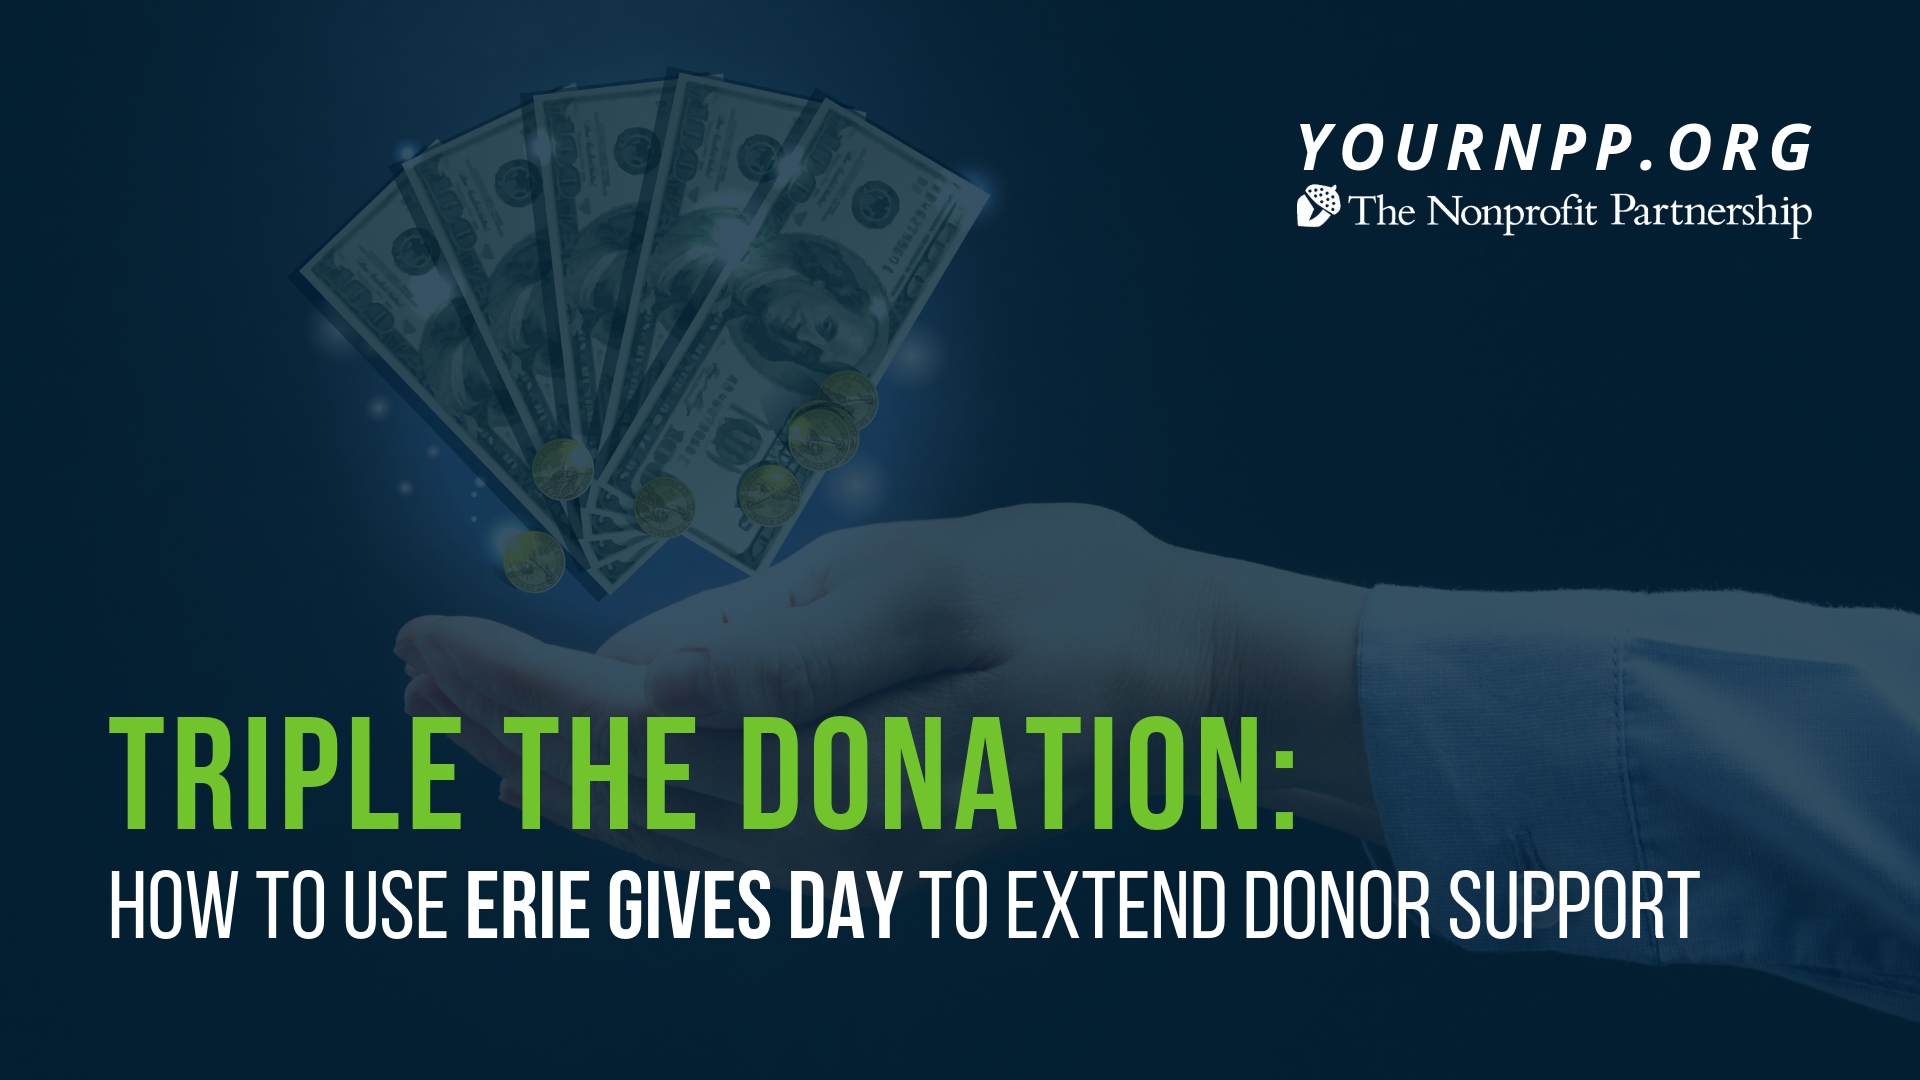 Triple the Donation: How to Use Erie Gives Day to Extend Donor Support